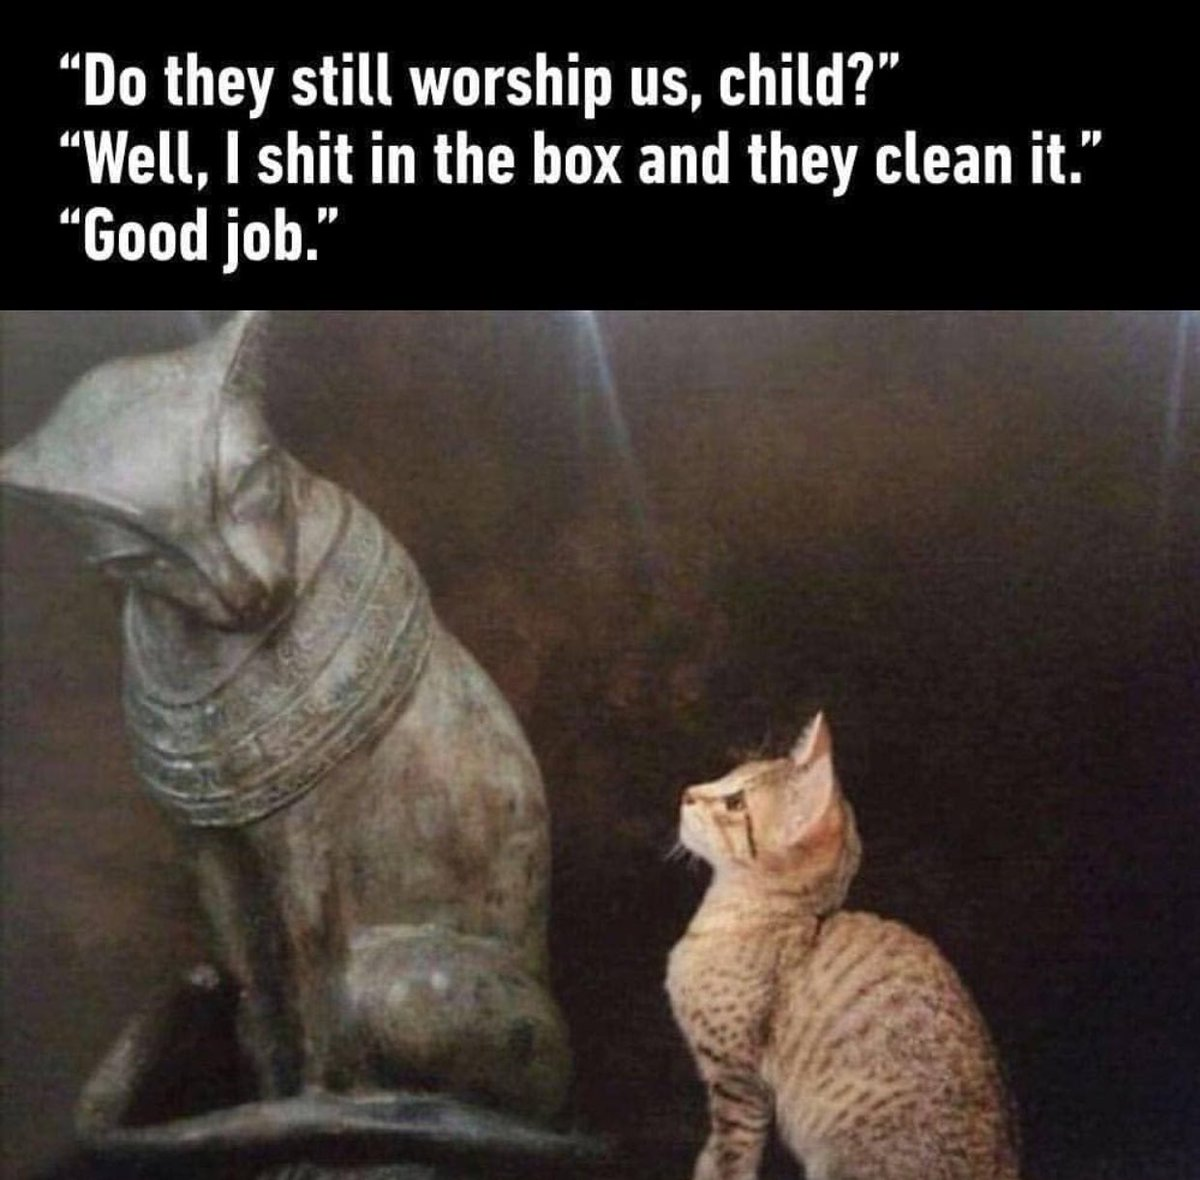 """- """"Do they still worship us, child?"""" - """"Well, I shit in the box and they clean it."""" - """"Good job."""""""